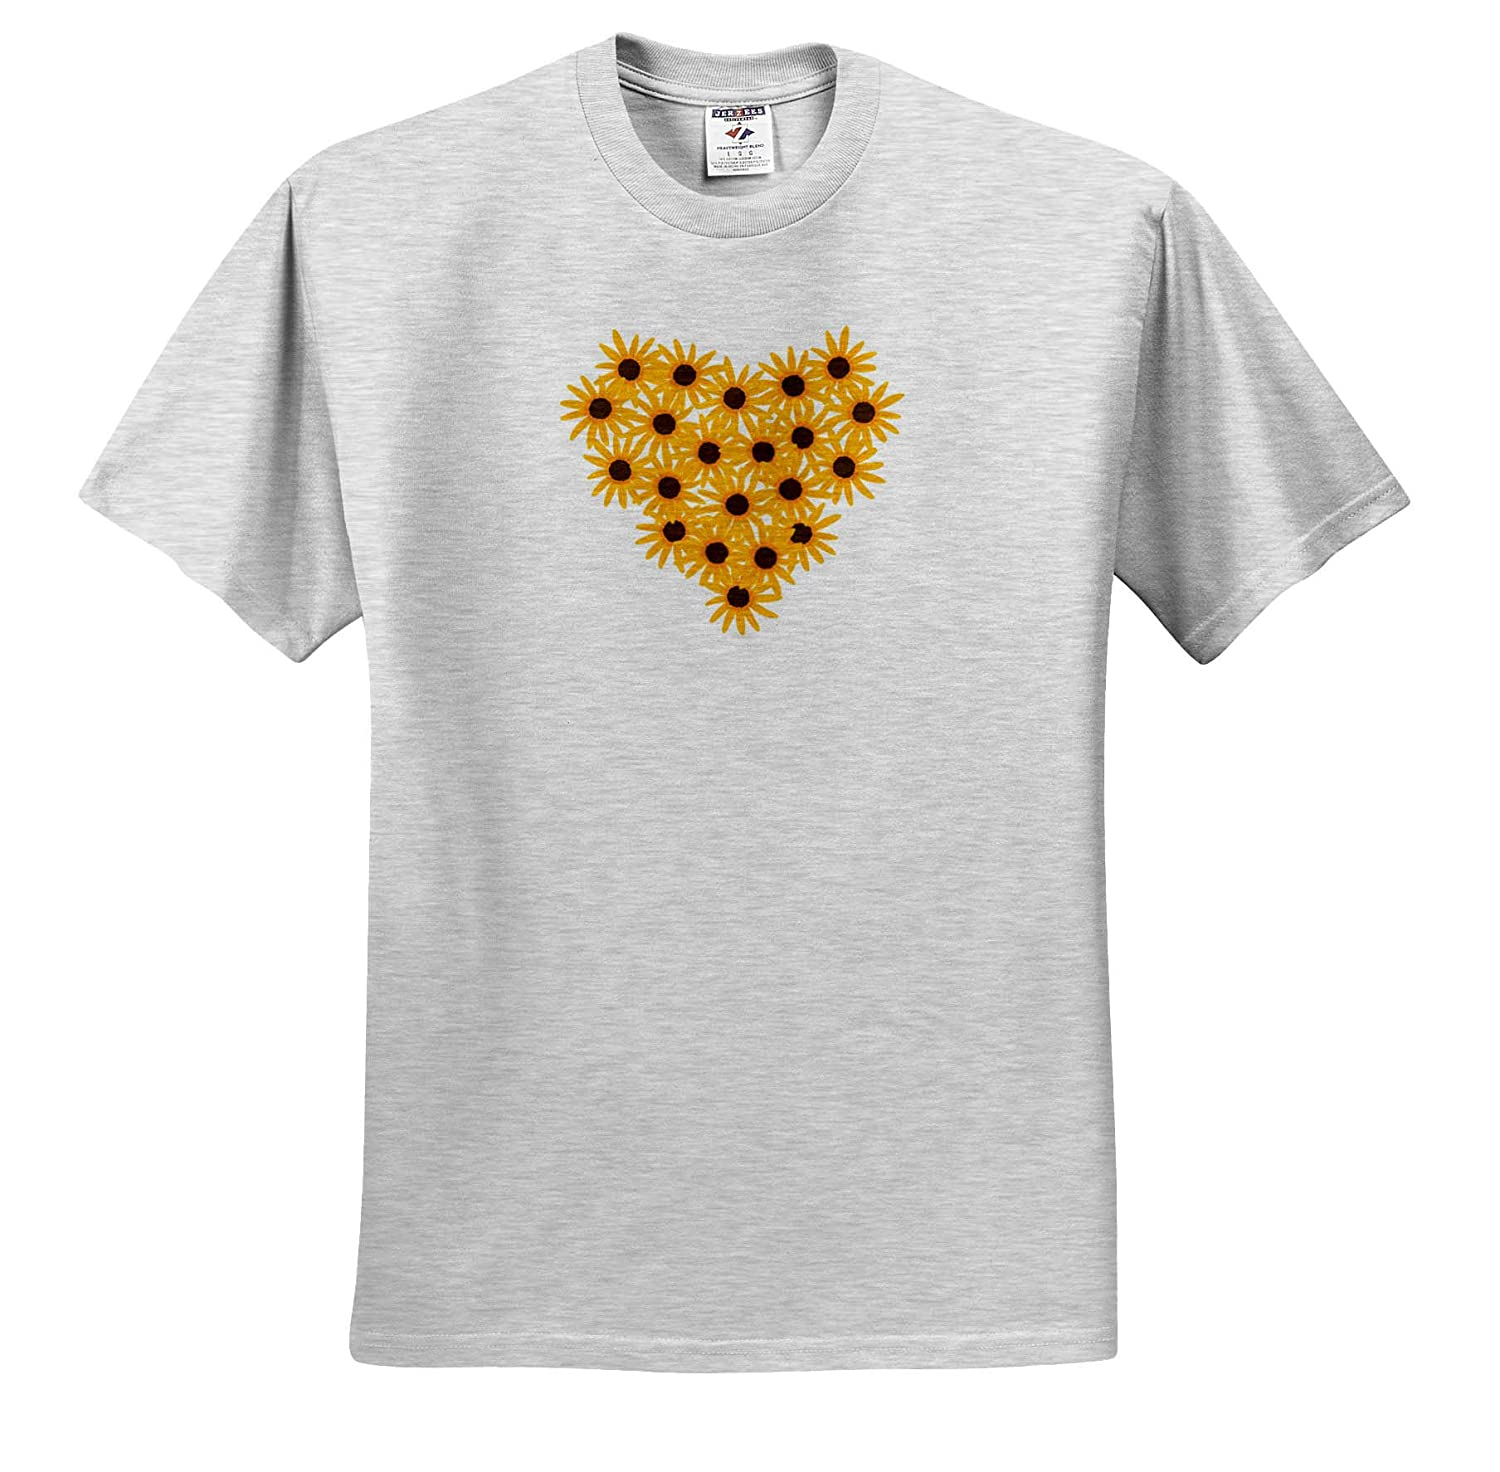 Adult T-Shirt XL 3dRose CherylsArt Hearts ts/_311427 Painting of Yellow Sunflowers Arranged in Heart Shape